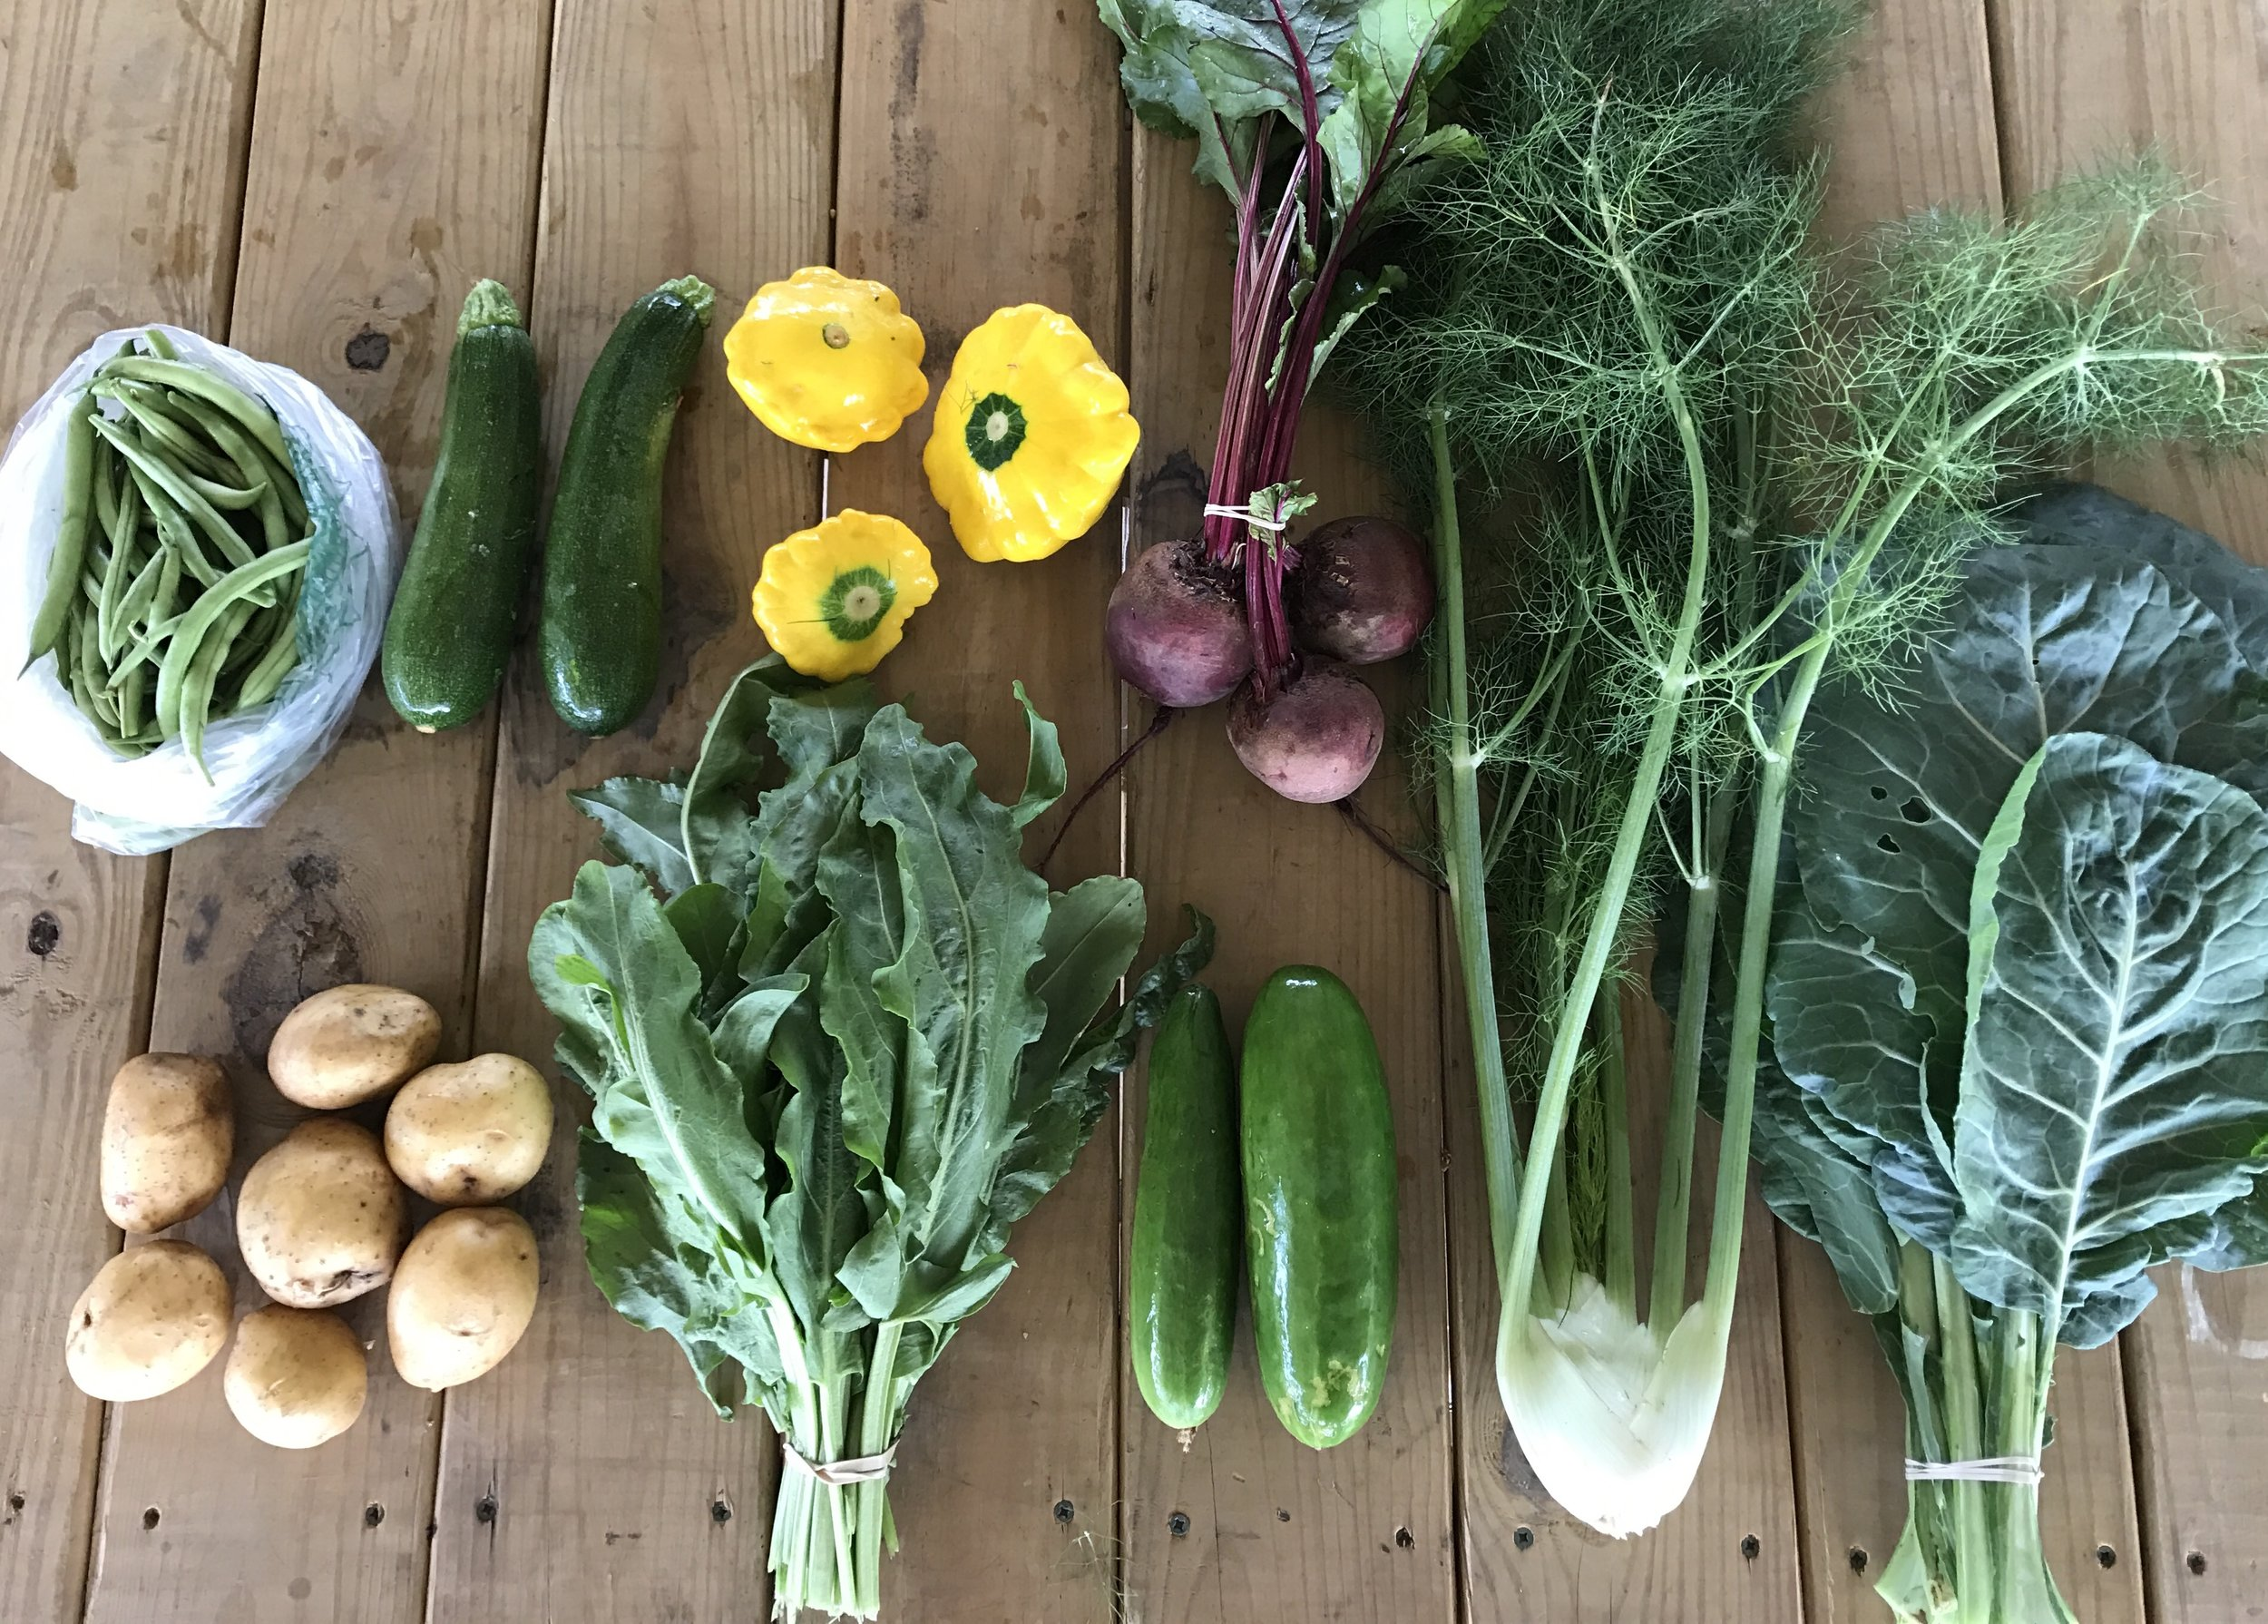 Top Row: Bush Beans, Zucchini, Squash, Beets  Bottom Row: Potatoes, Sorrel, Cucumbers, Fennel, Collards